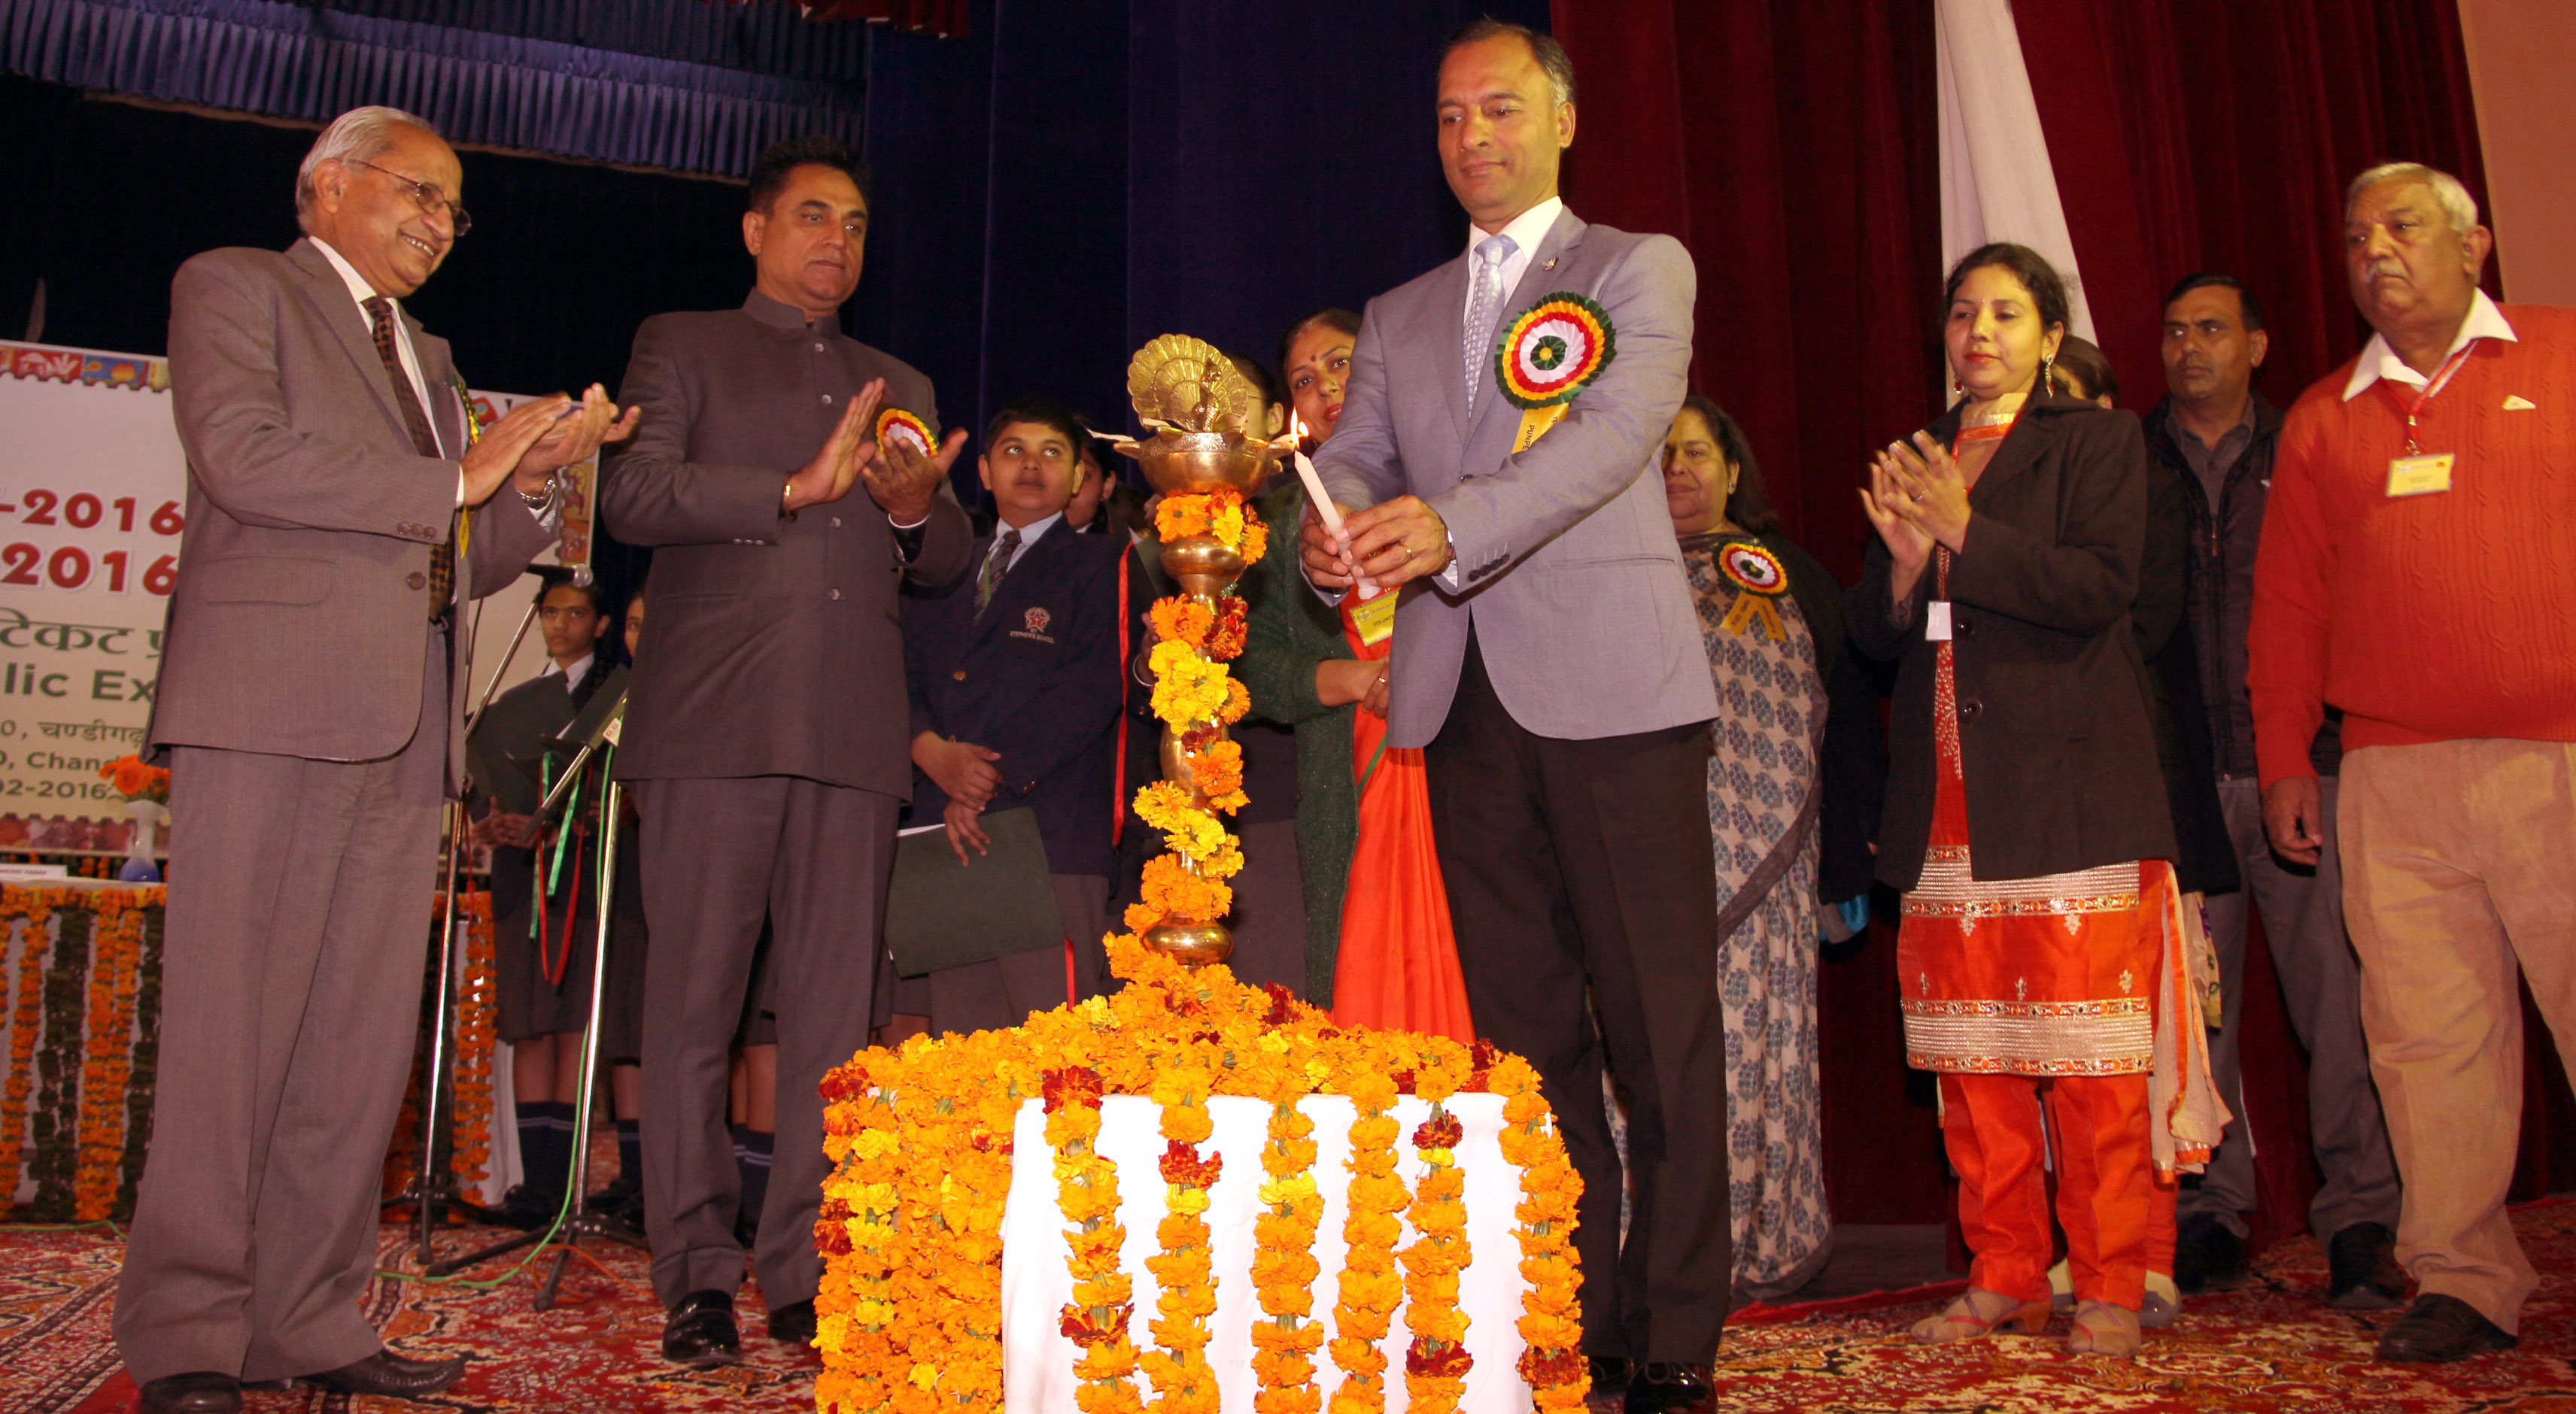 The Adviser to the Administrator, UT, Chandigarh, Mr. Vijay Dev, lighting the traditional lamp at the inauguration of the State Level Philatelic Exhibition Punpex 2016 India Post Punjab Circle at DAV College, Sector 10, Chandigarh on Saturday, February 06, 2016.